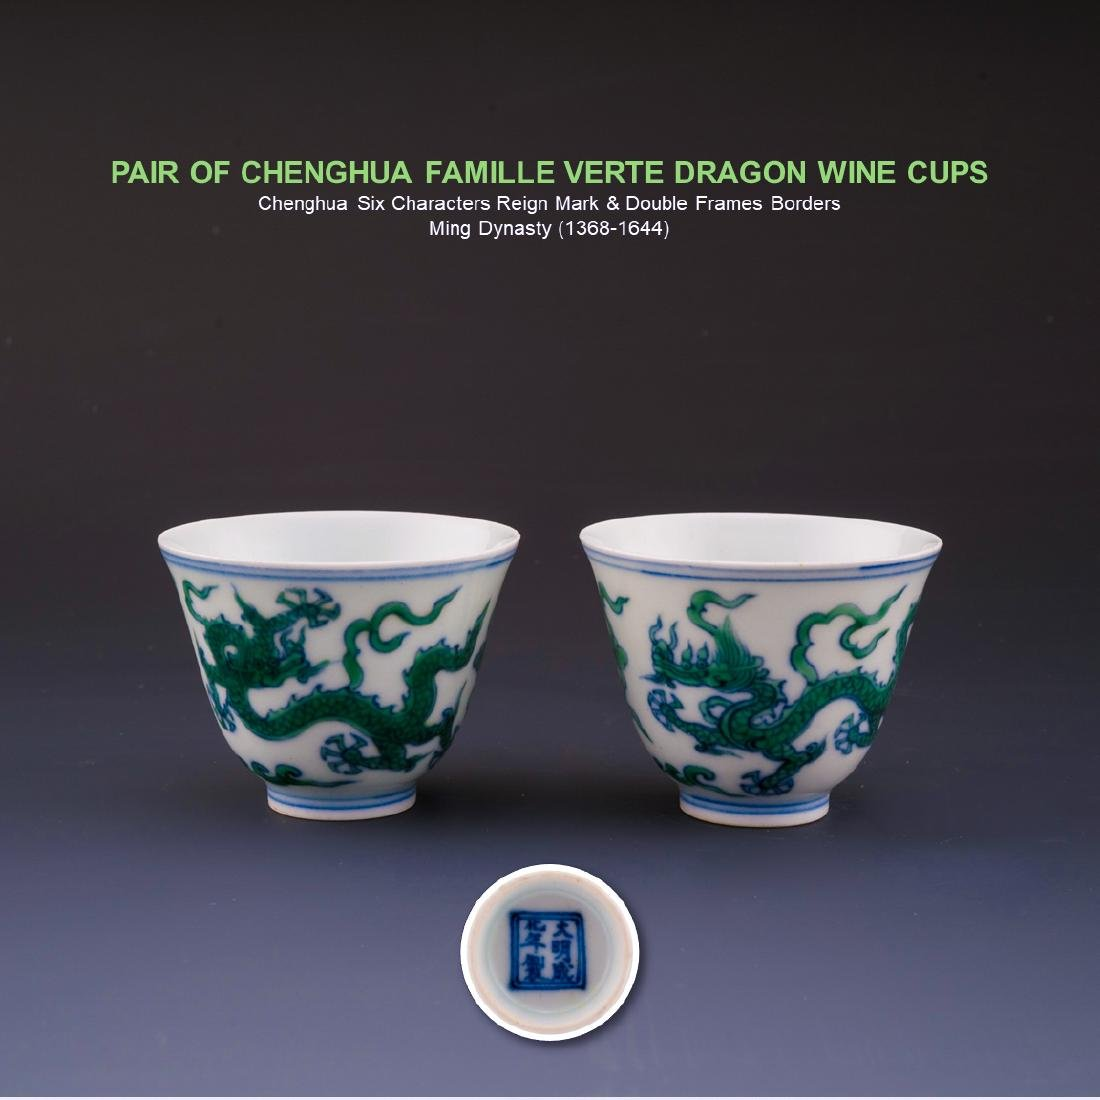 PAIR OF CHENGHUA FAMILLE VERTE DRAGON WINE CUPS